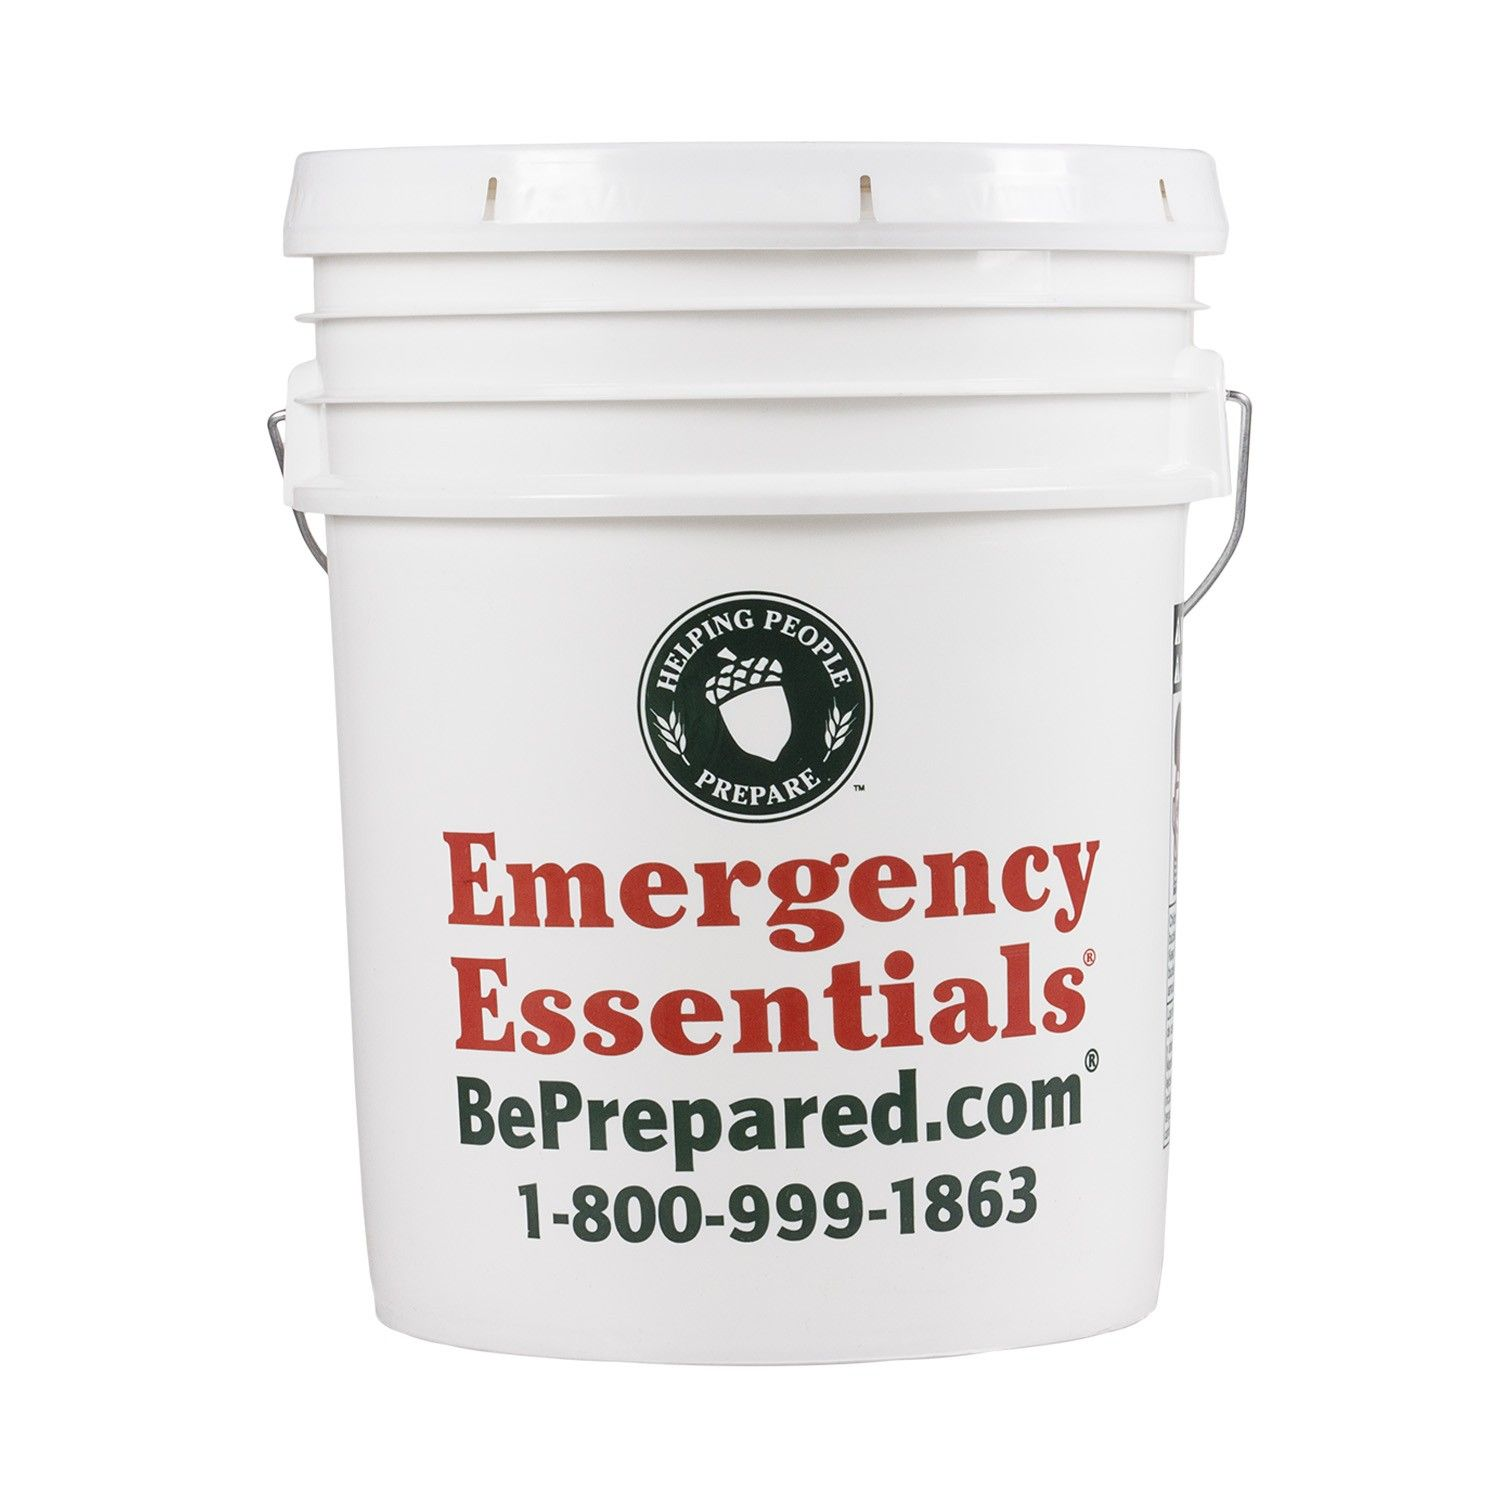 5 Gallon Bucket With Lid Emergency Essentials Food Storage Containers Food Grade Buckets